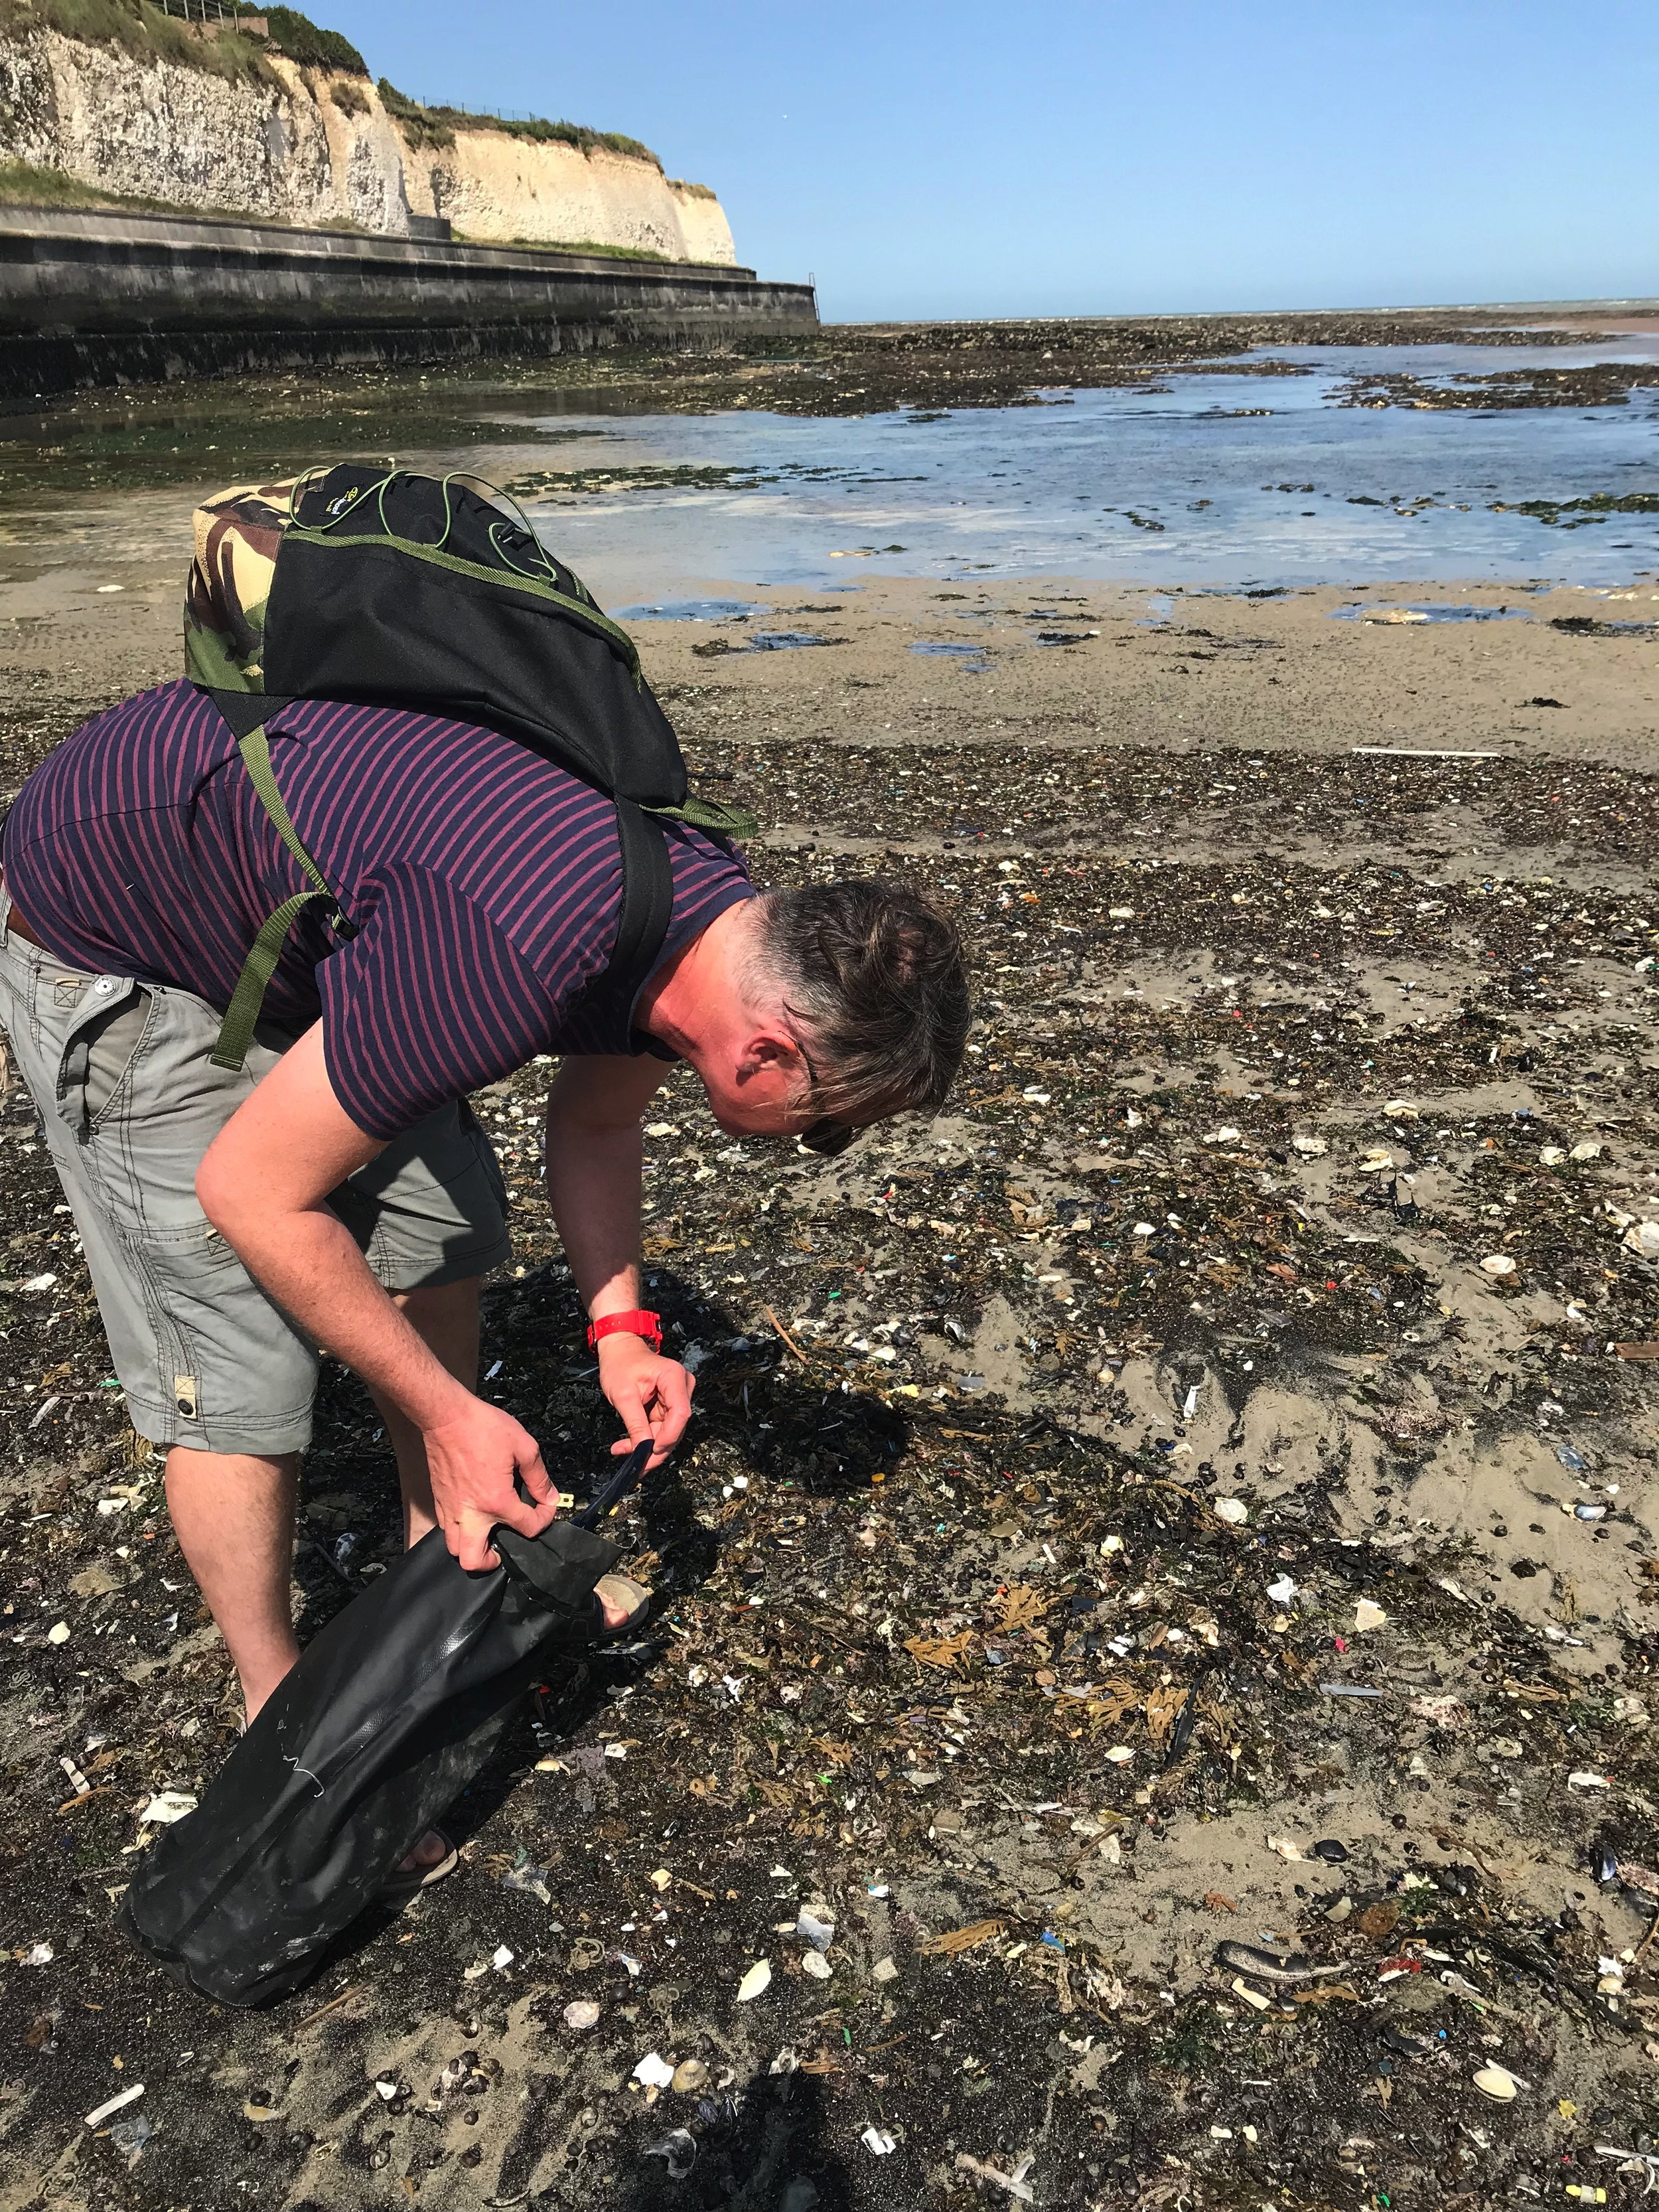 Artist at work: Steve McPherson collects plastic objects and fragments from the beach for future projects at Eccles Beach, Kent, UK.